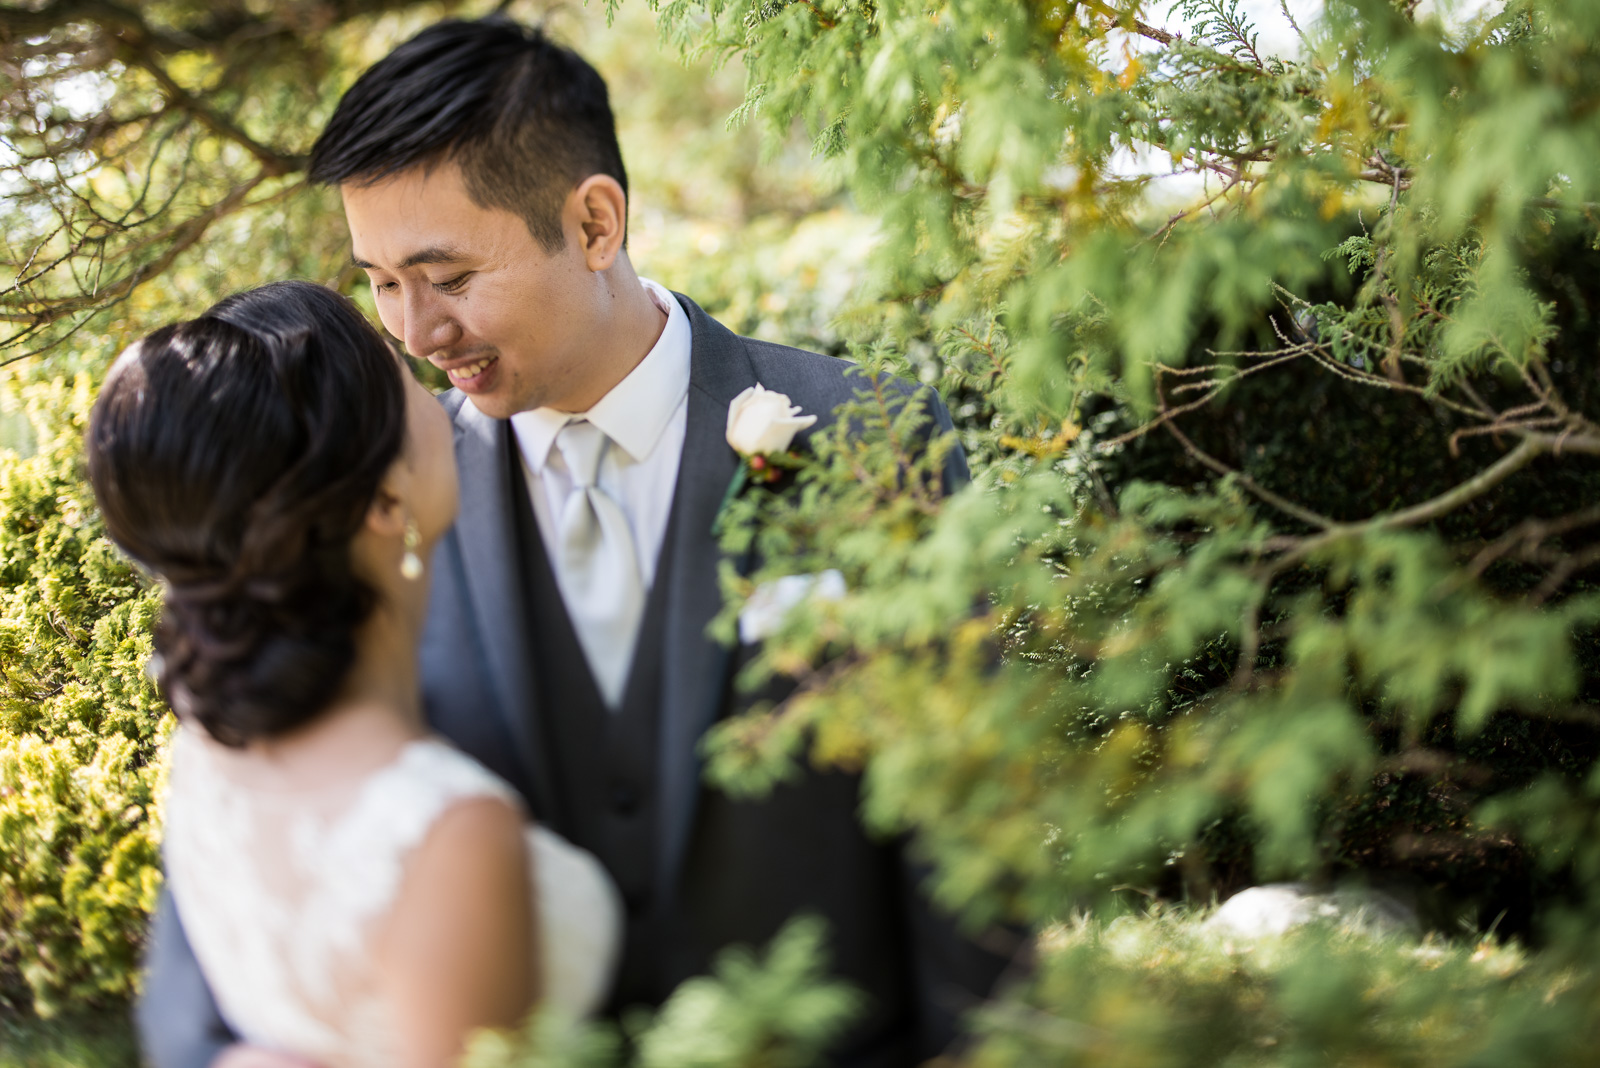 bride and groom portrait outdoors at cecil green park house on ubc campus in vancouver - victoria wedding photographers